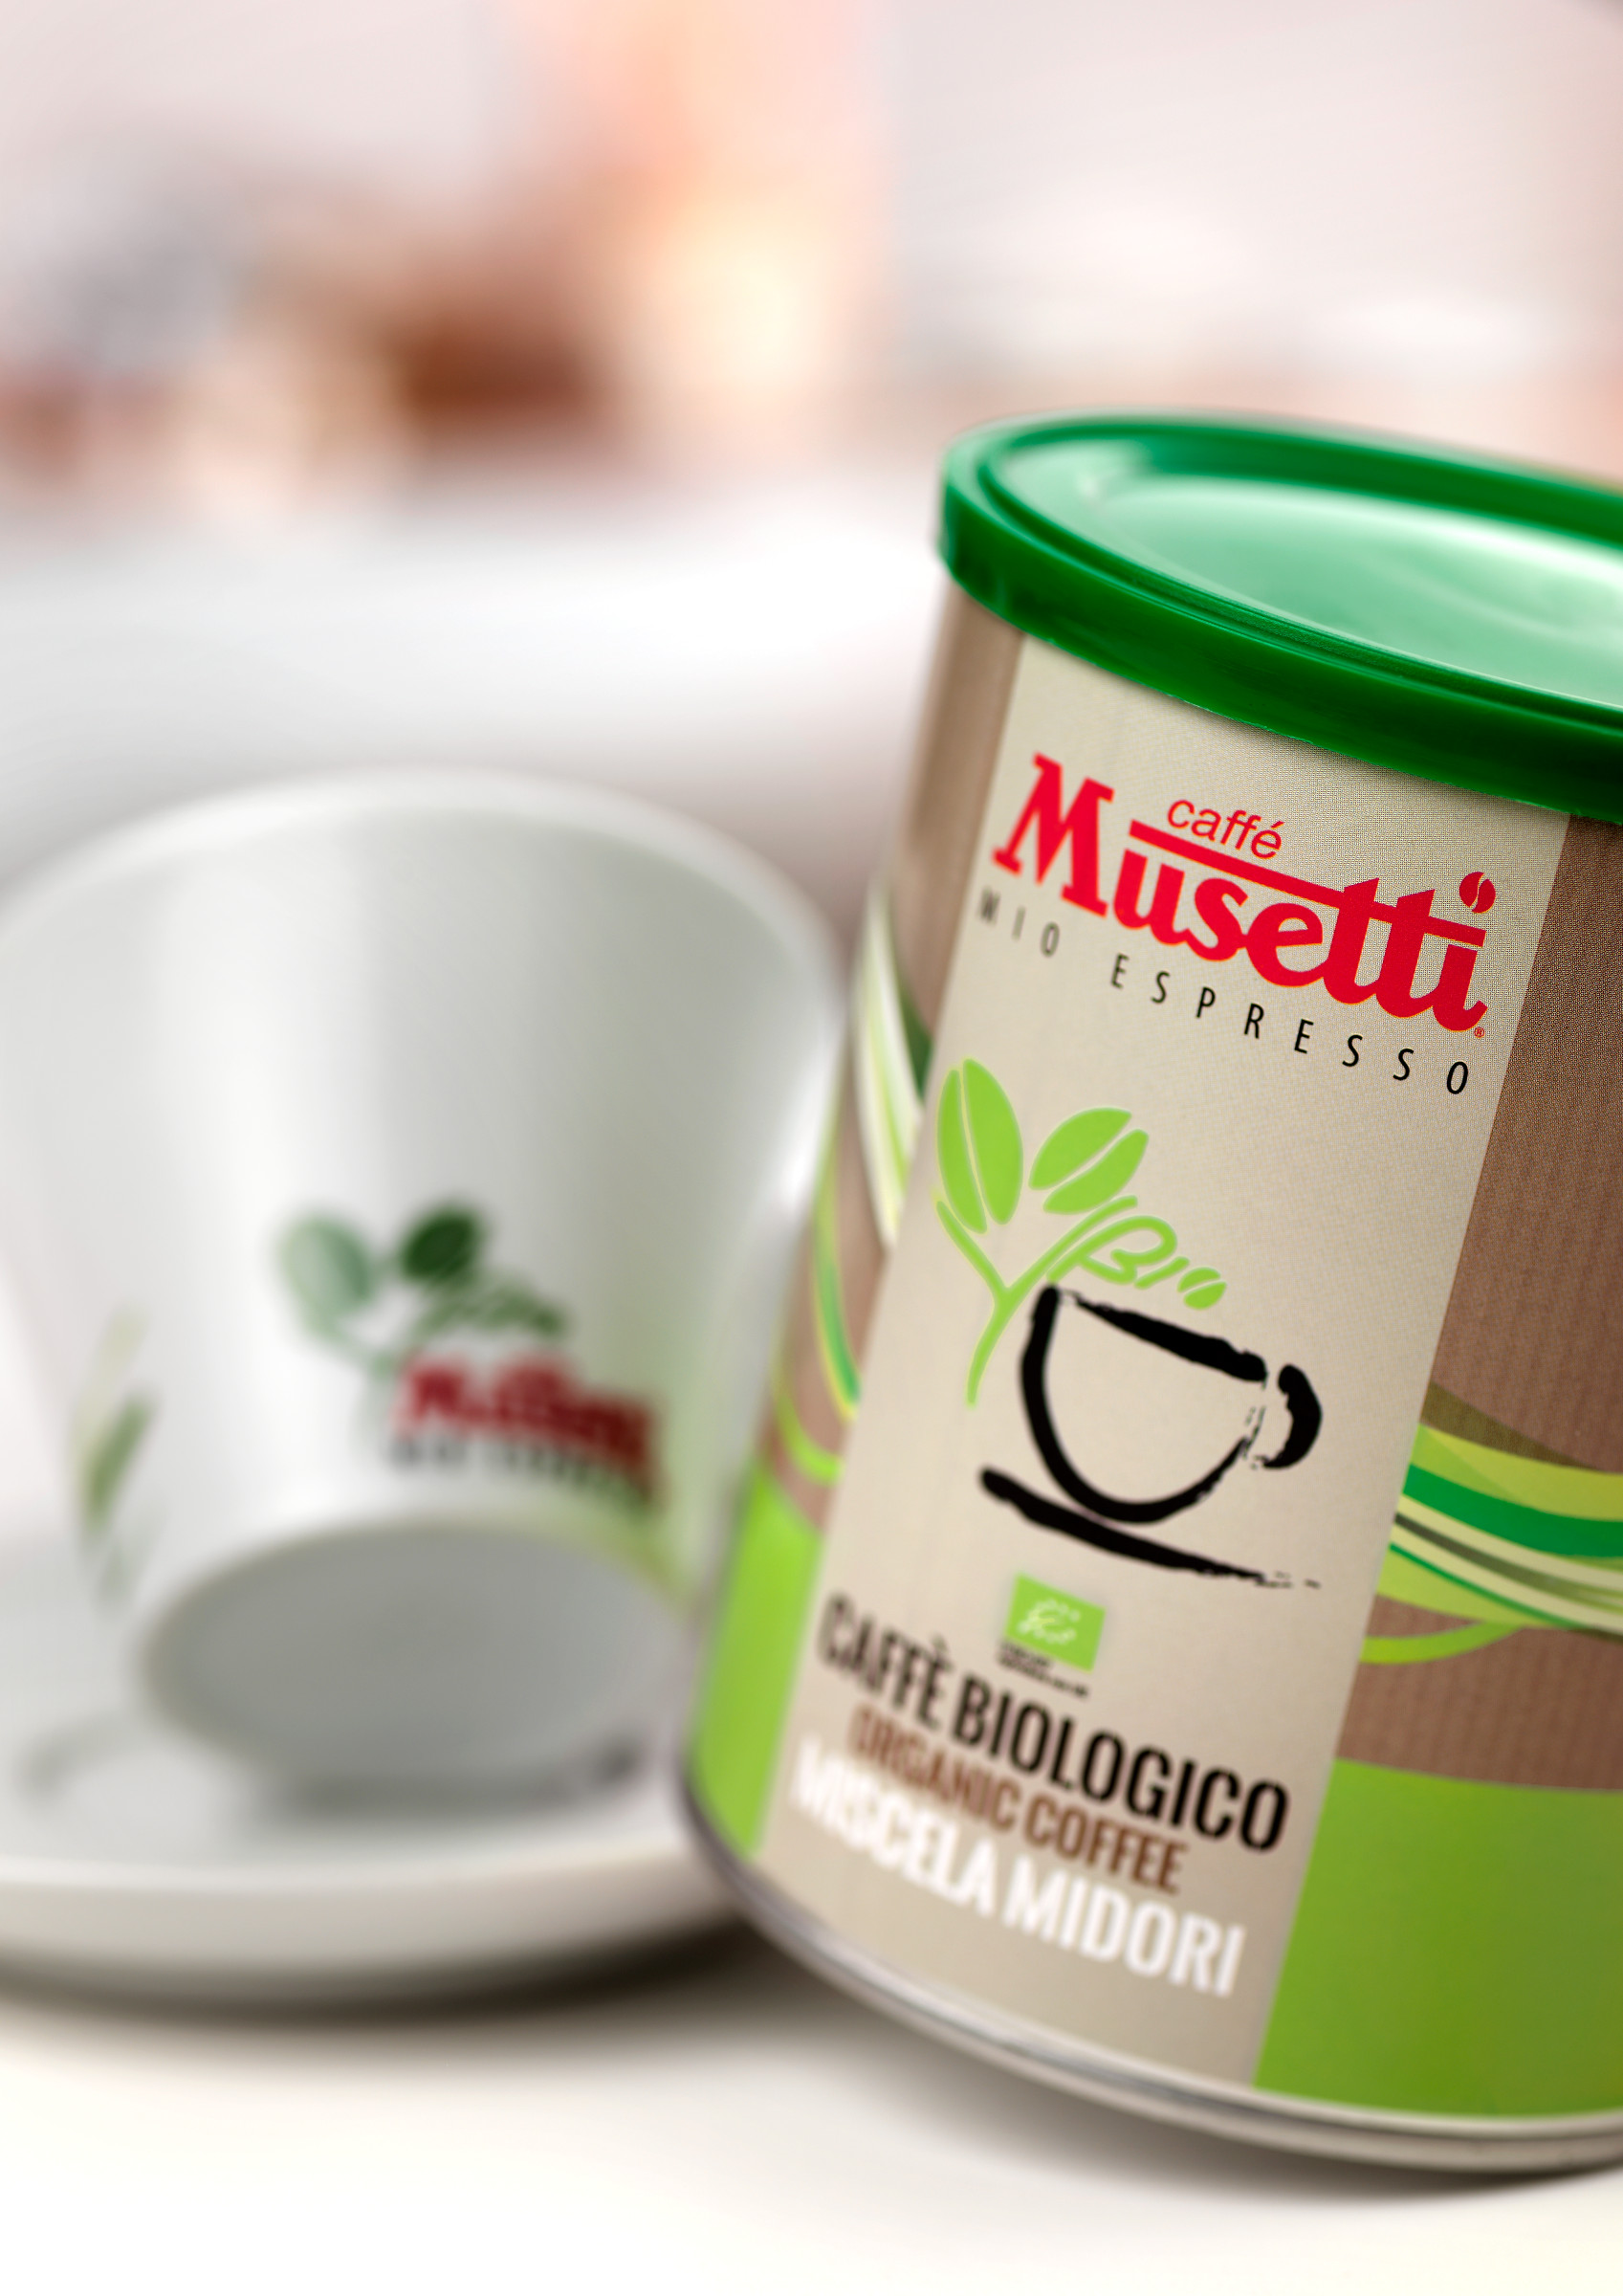 Musetti midori biologico organic coffee 250 g 8 8 for Musetti coffee